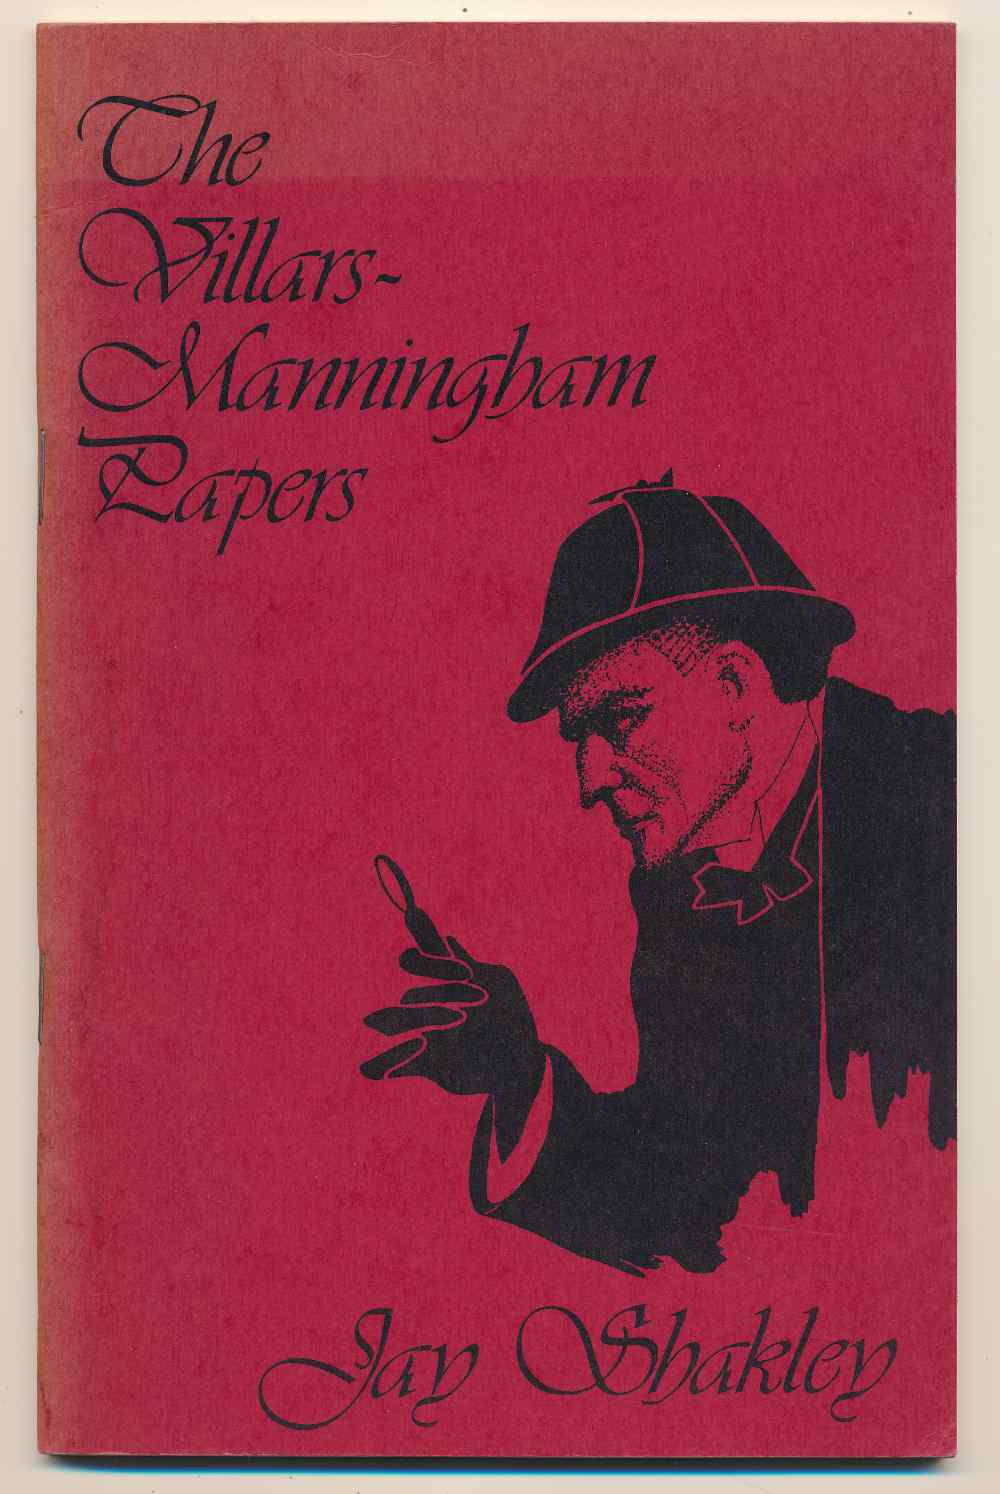 The Villars-Manningham papers, and other stories of Sherlock Holmes